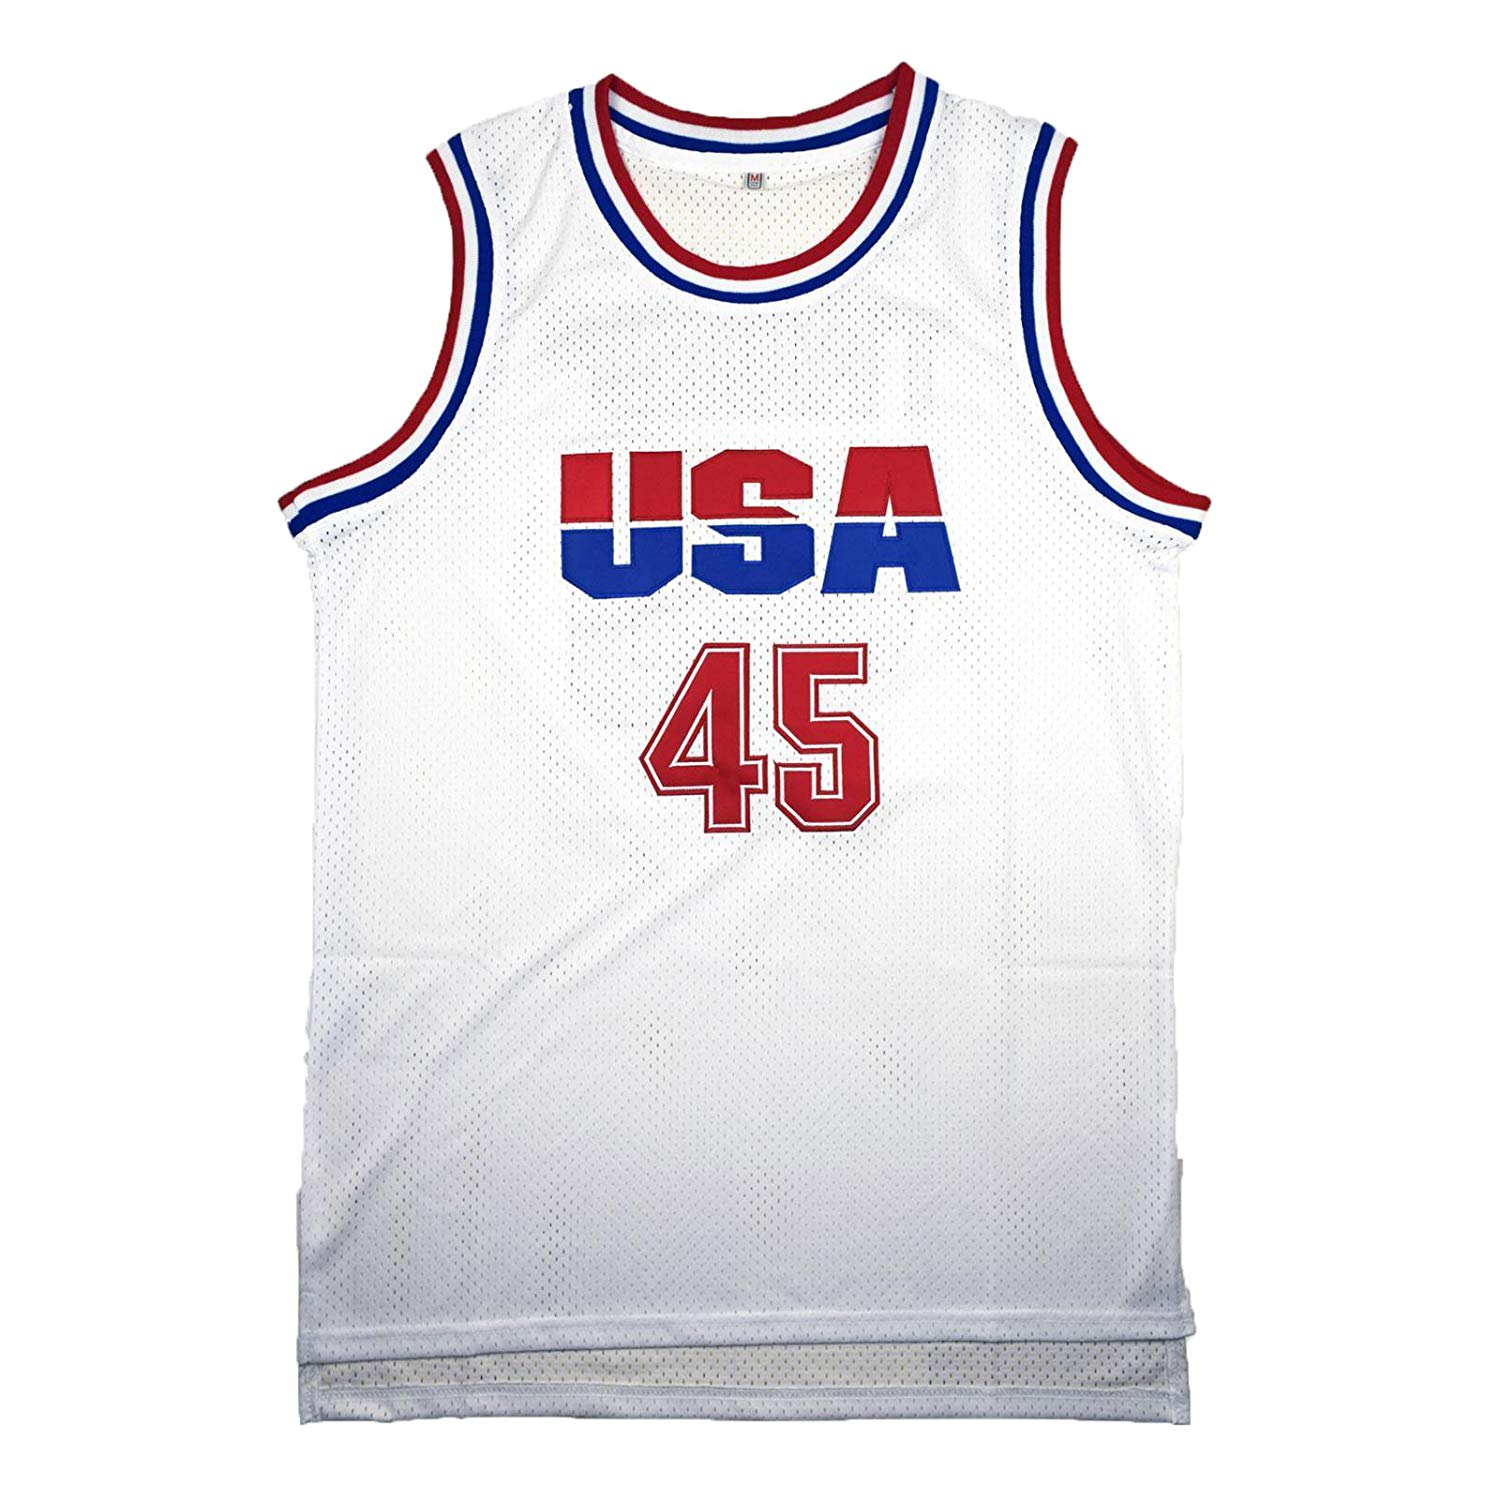 2f7df0e0389a Get Quotations · CoreSpot Men s Basketball Jersey  45 Trump USA White Color  Basketball Jersey